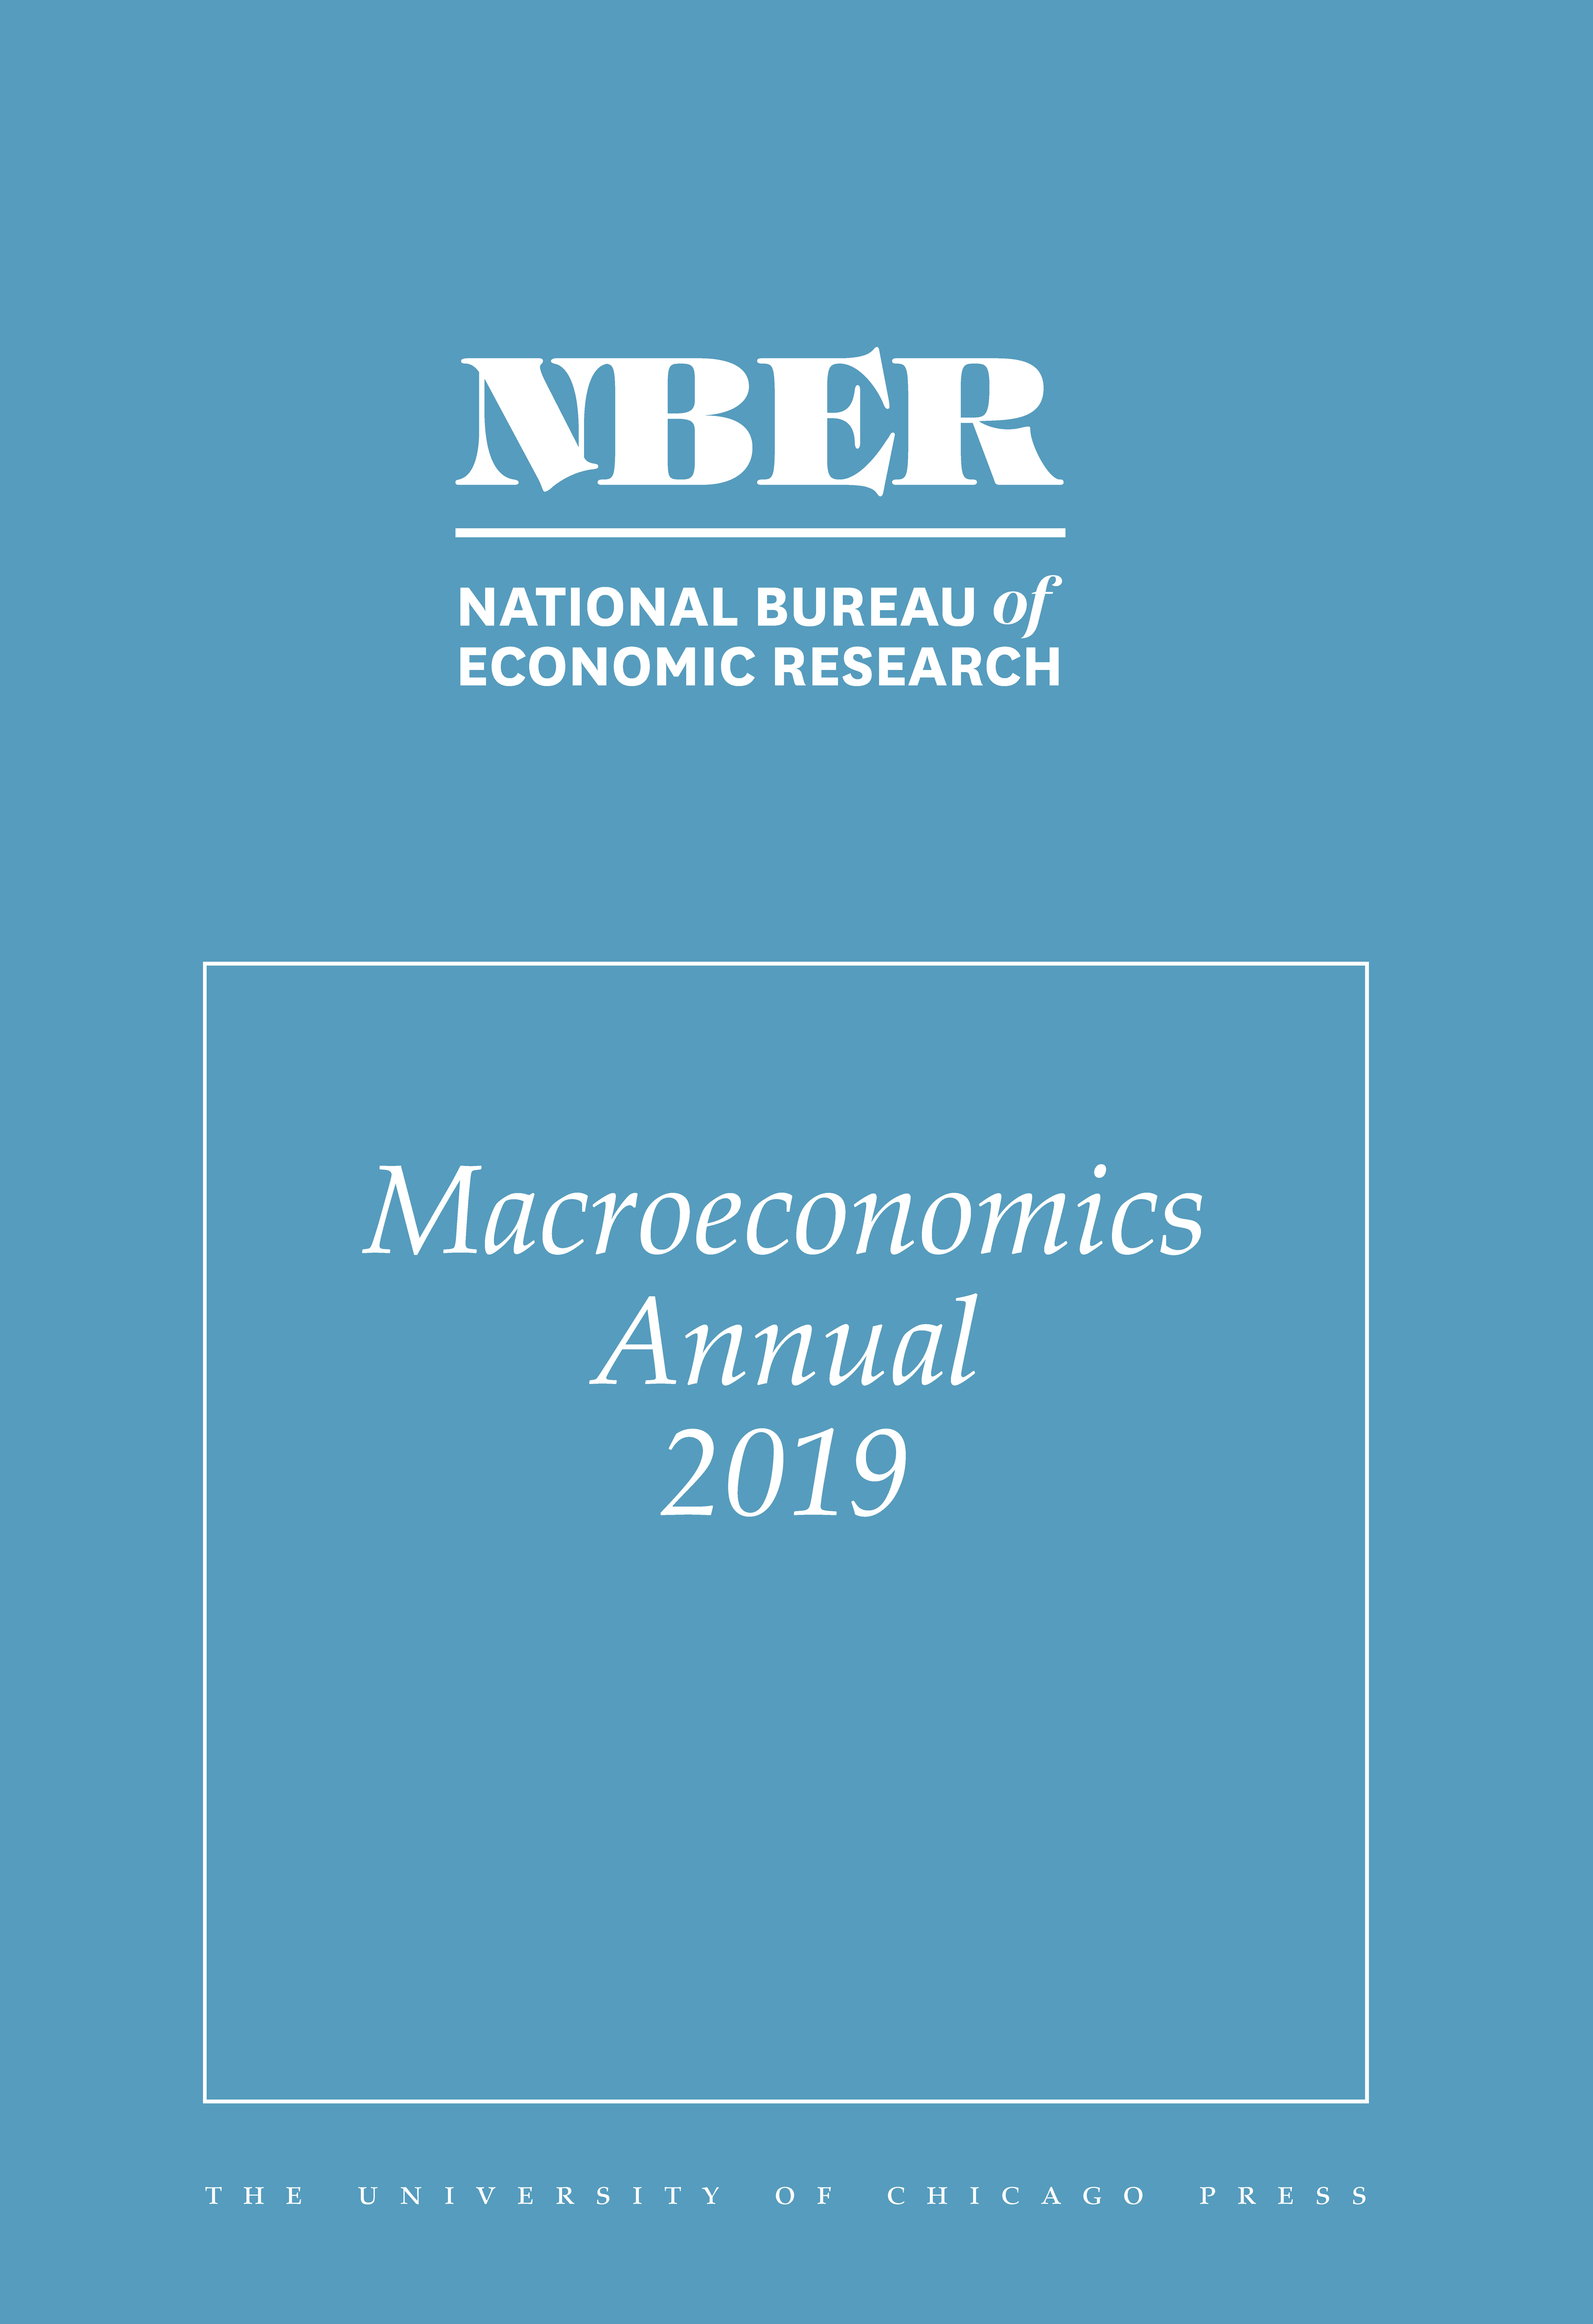 NBER Macroeconomics Annual 2019: Volume 34